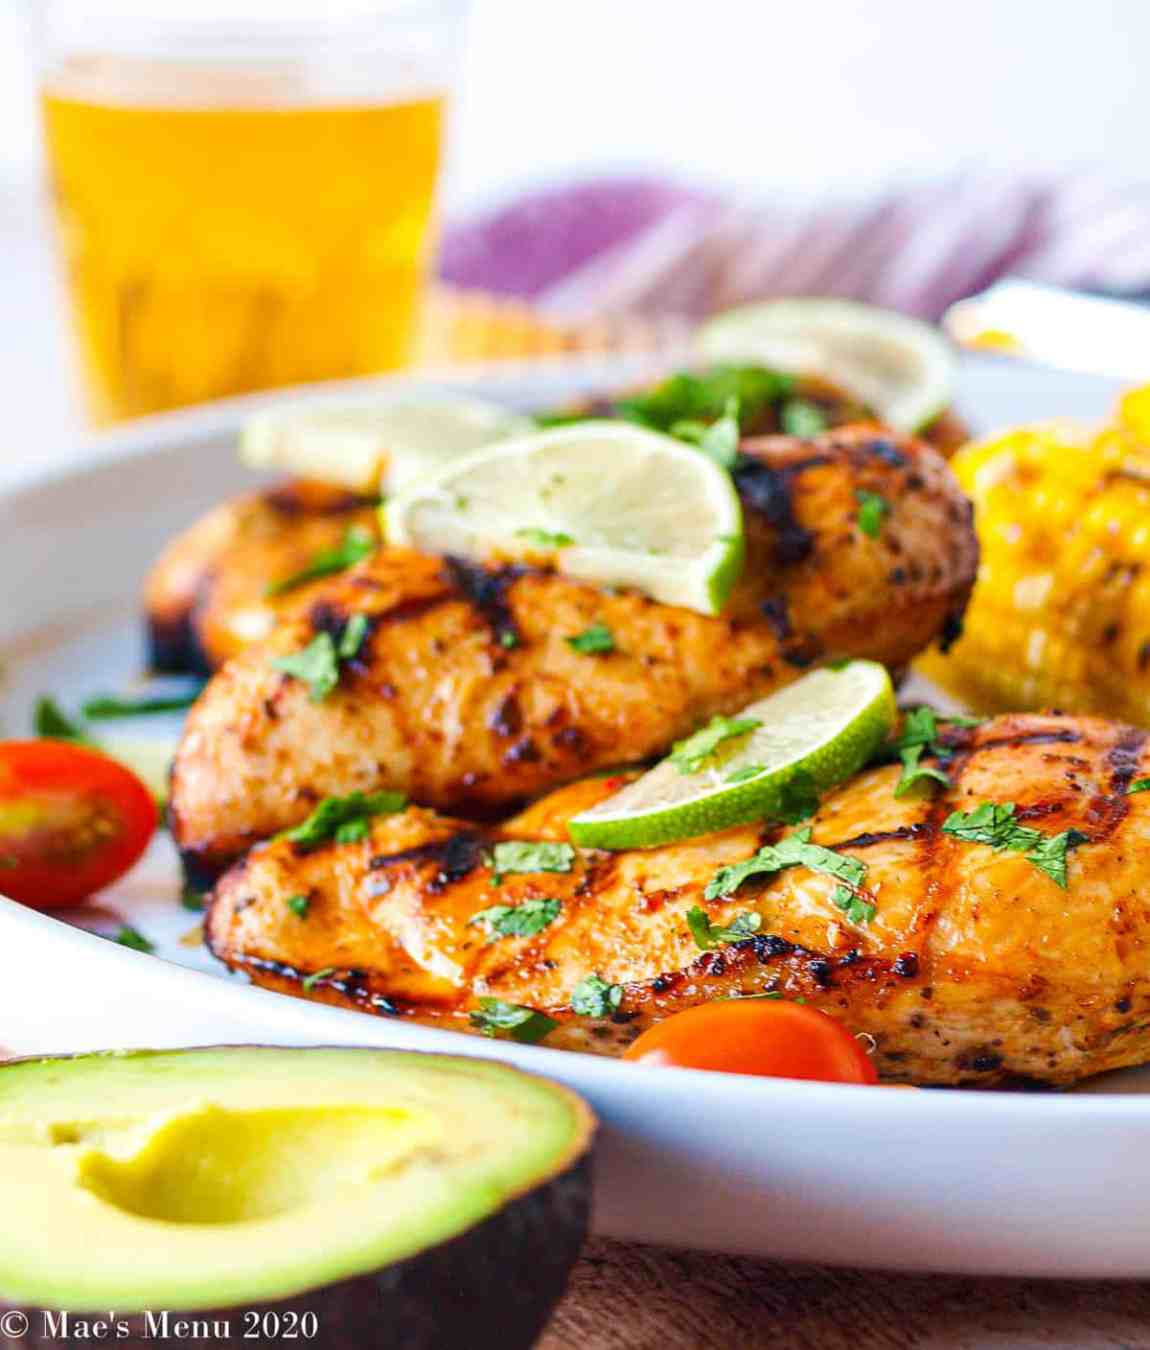 A side shot of a large white platter with grilled chicken breasts on it. In front of the platter sits a half of an avocado. On front of the chicken sits the lime slices and sliced cilantro.